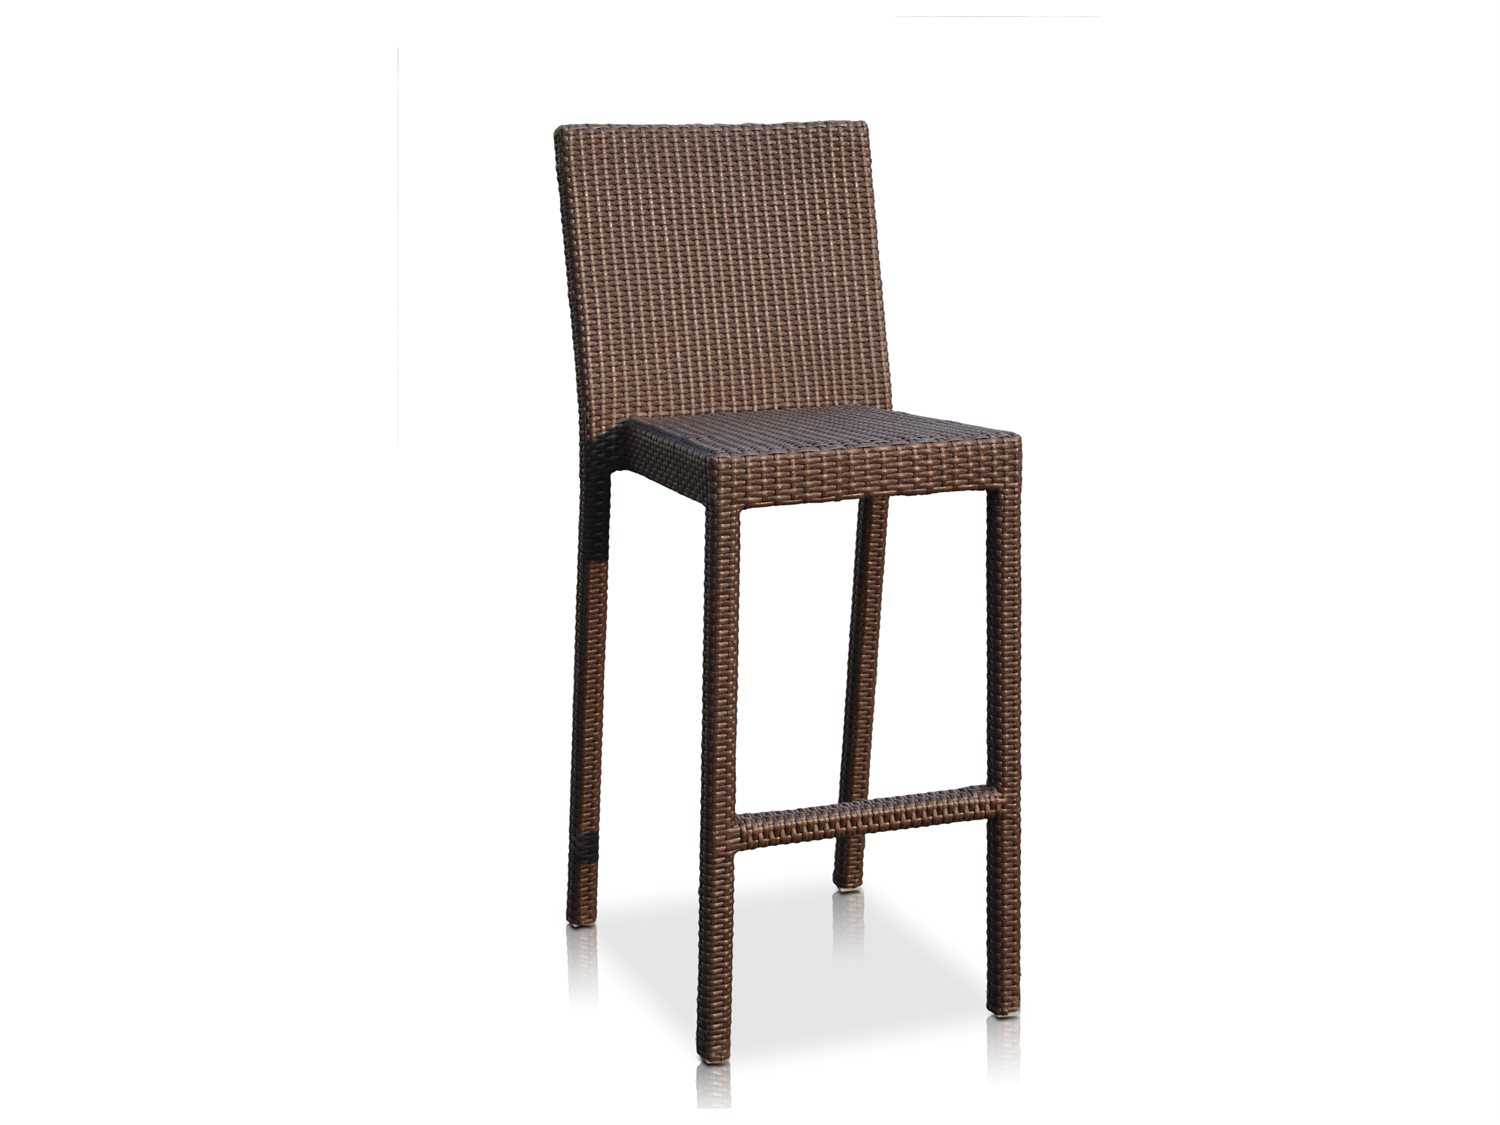 bamboo dining chairs sydney mission style morris chair hospitality rattan outdoor aluminum wicker